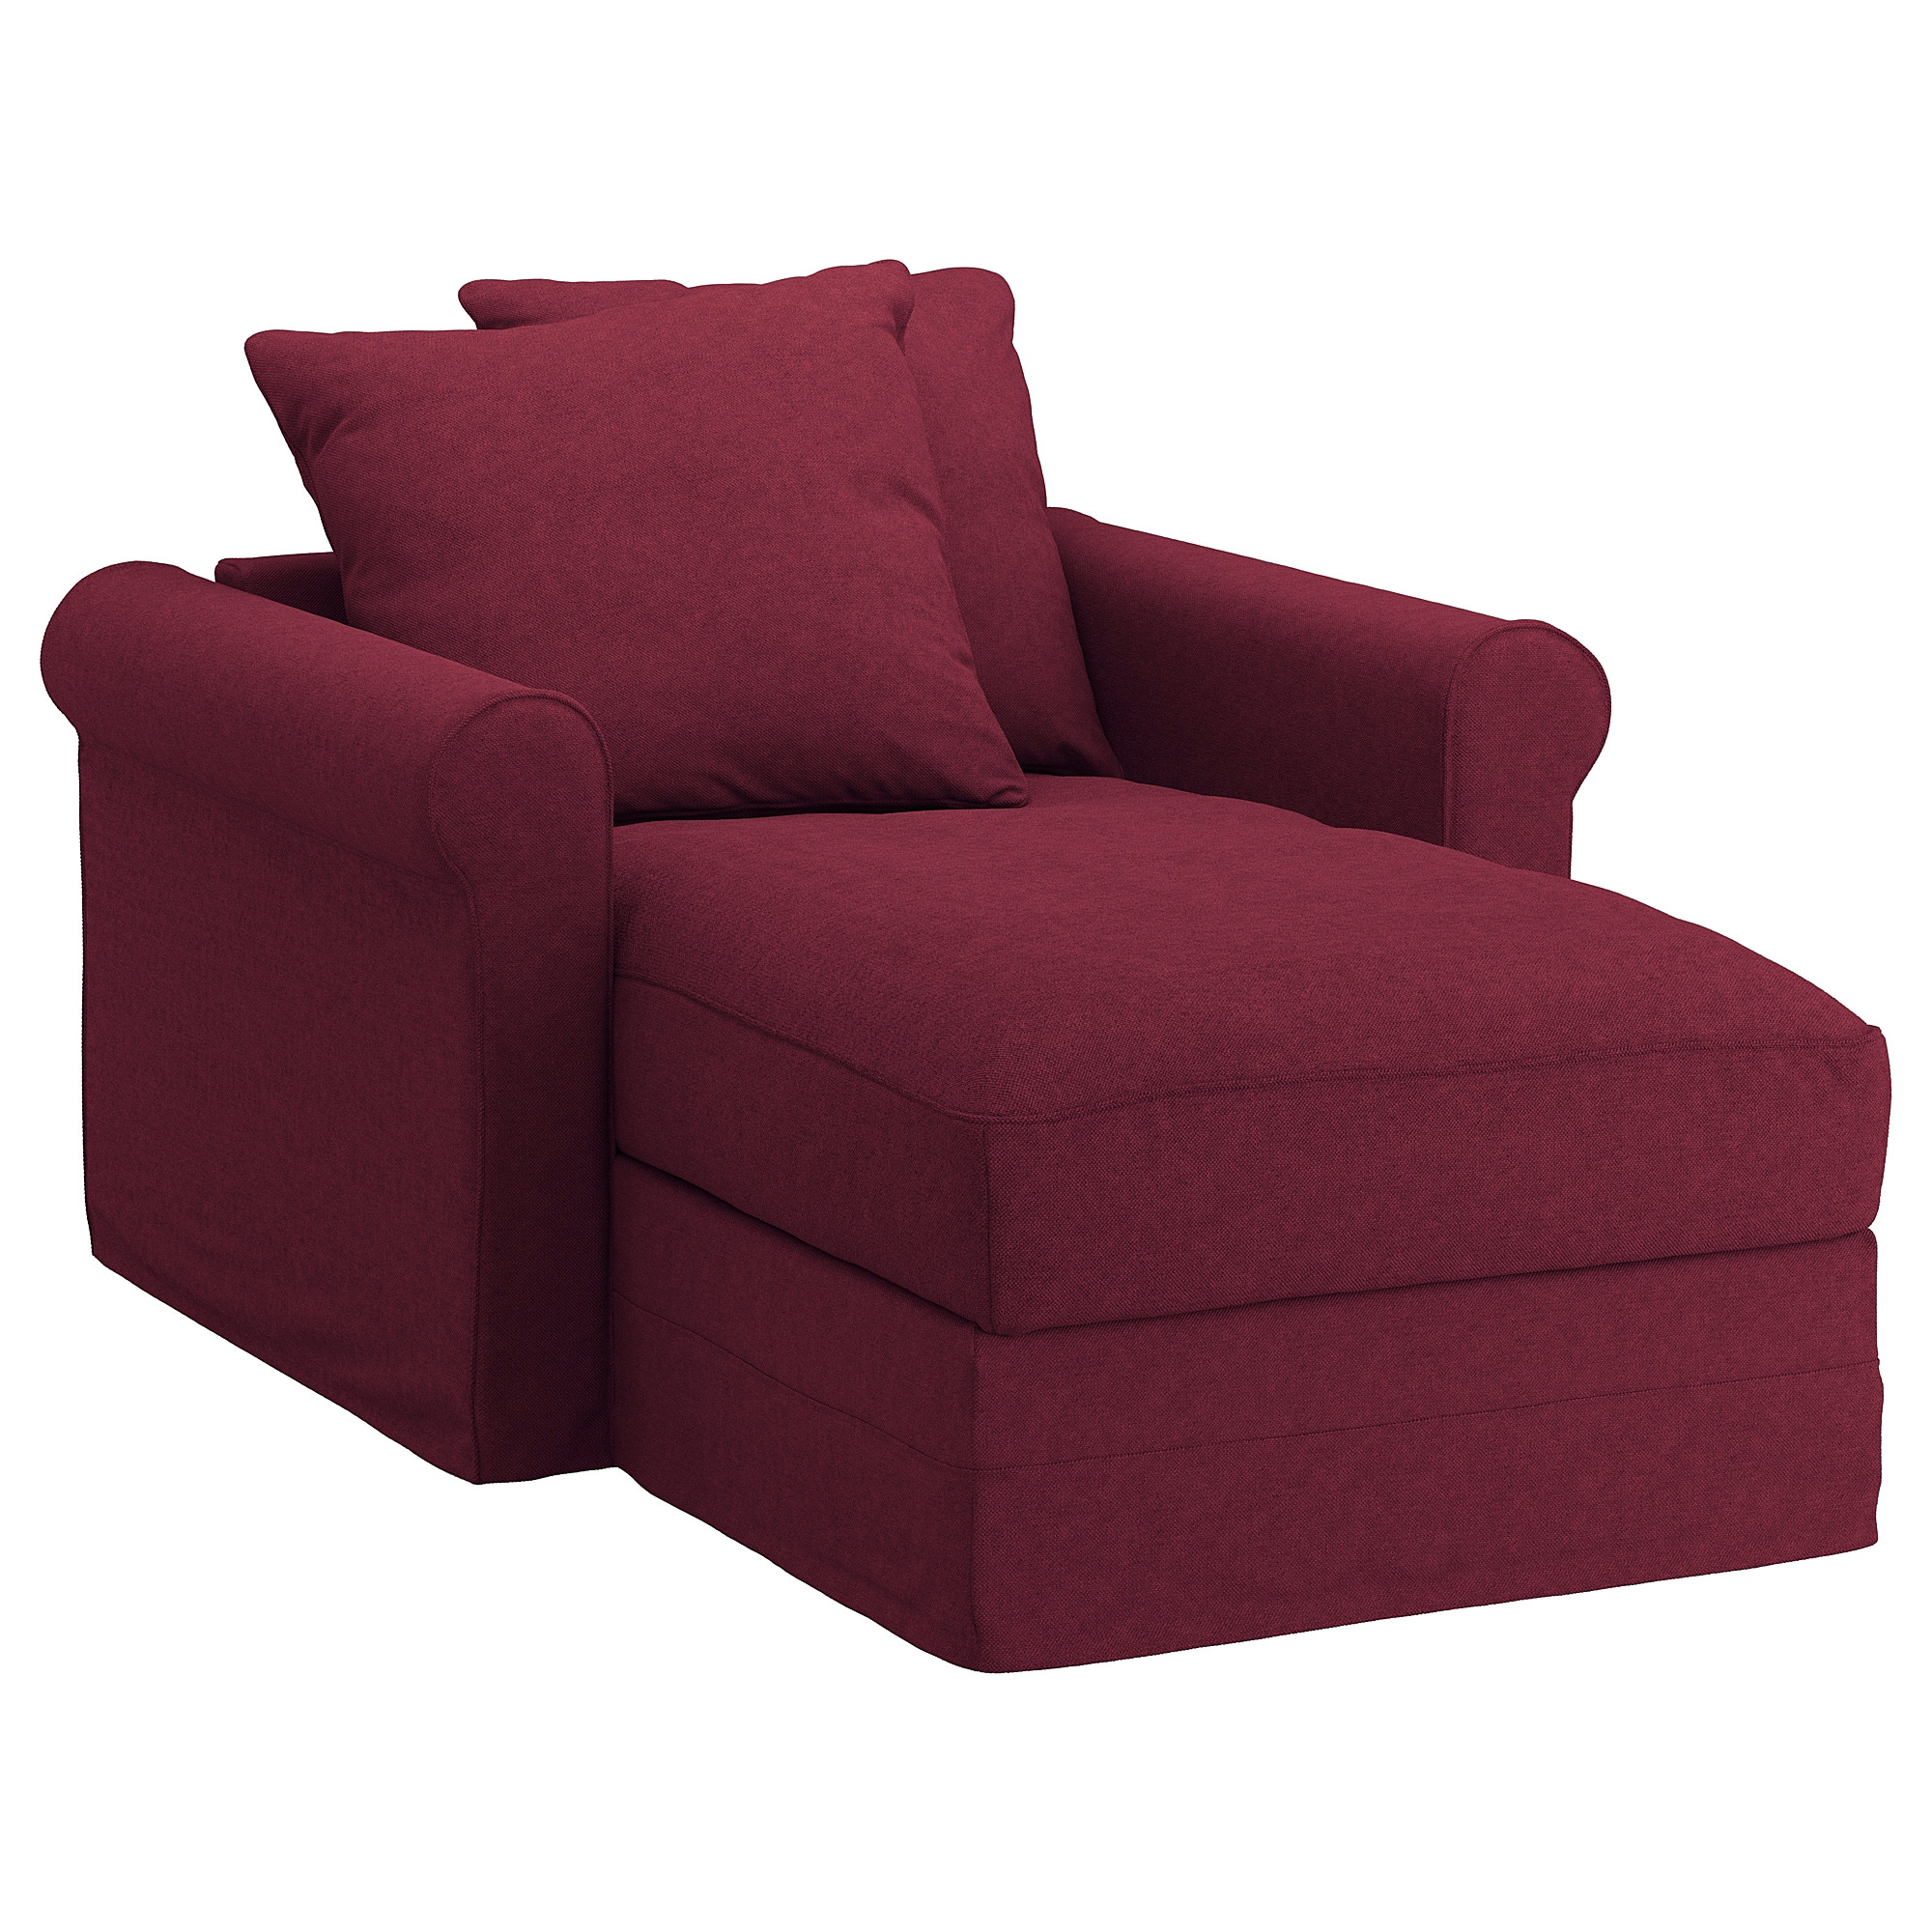 Ikea With Regard To Covers For Sofas And Chairs (View 14 of 20)